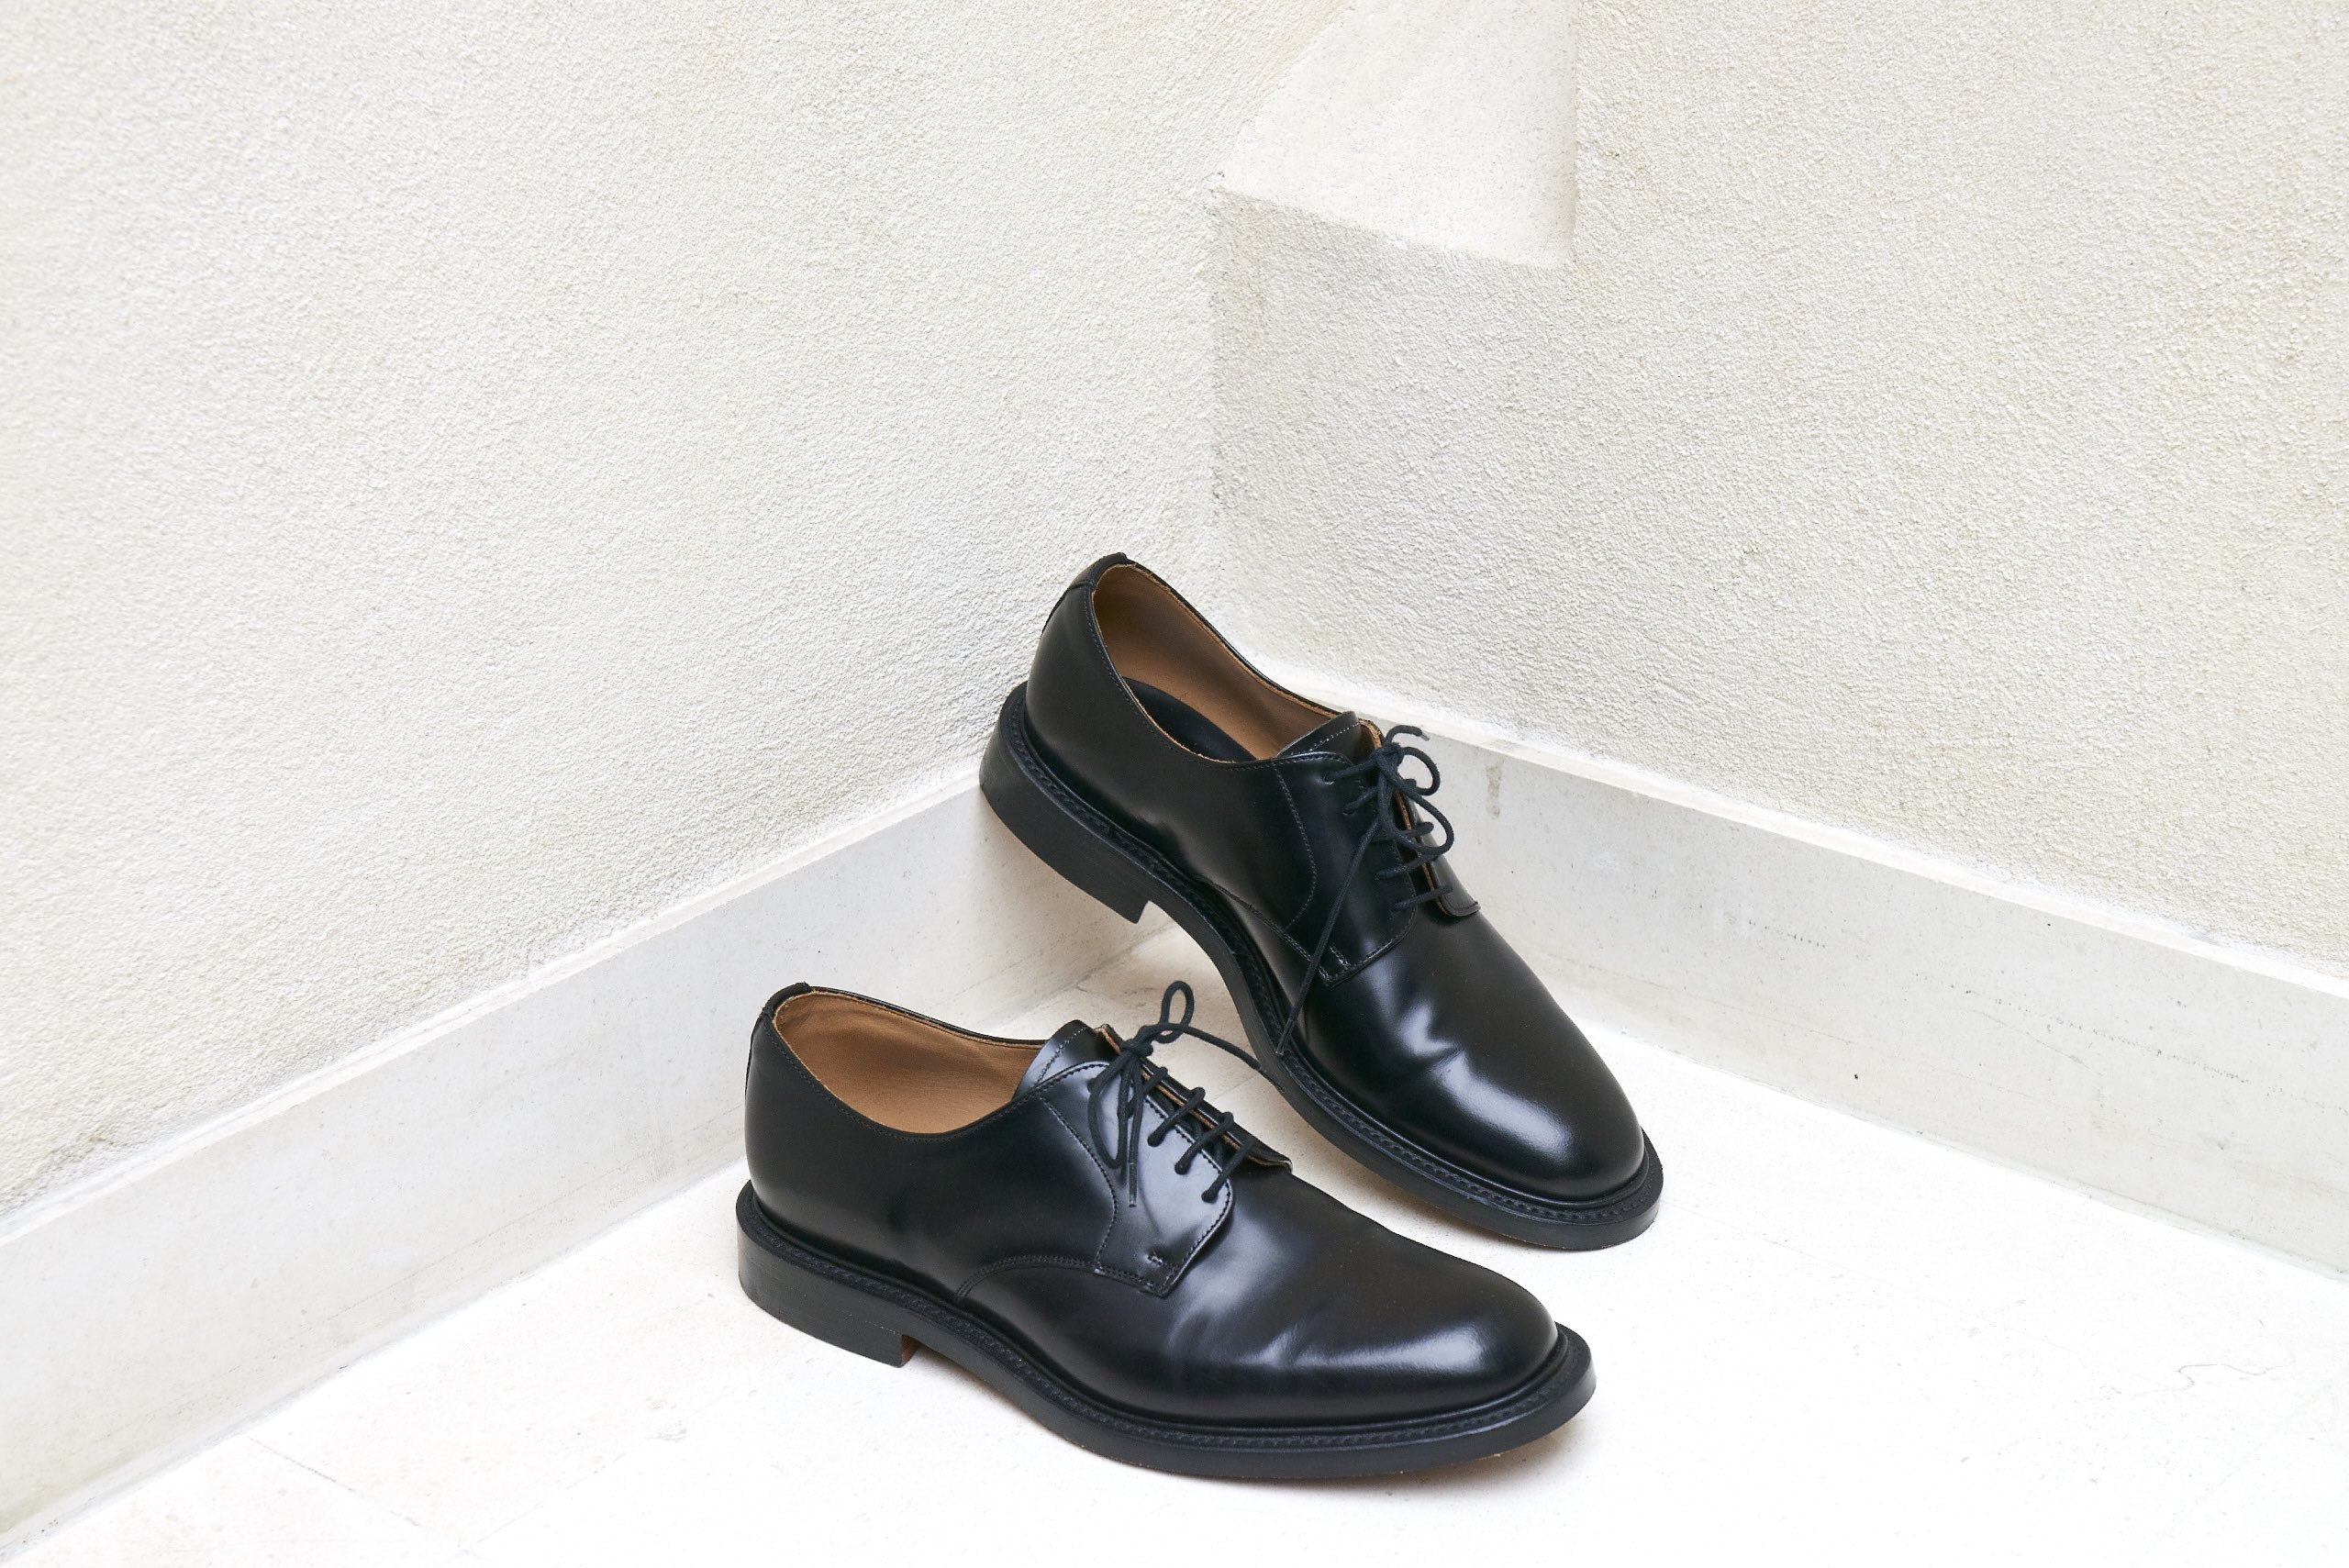 SANDRO DERBY MADE IN ENGLAND SHOE LEATHER HOMME MENSWEAR LEATHER